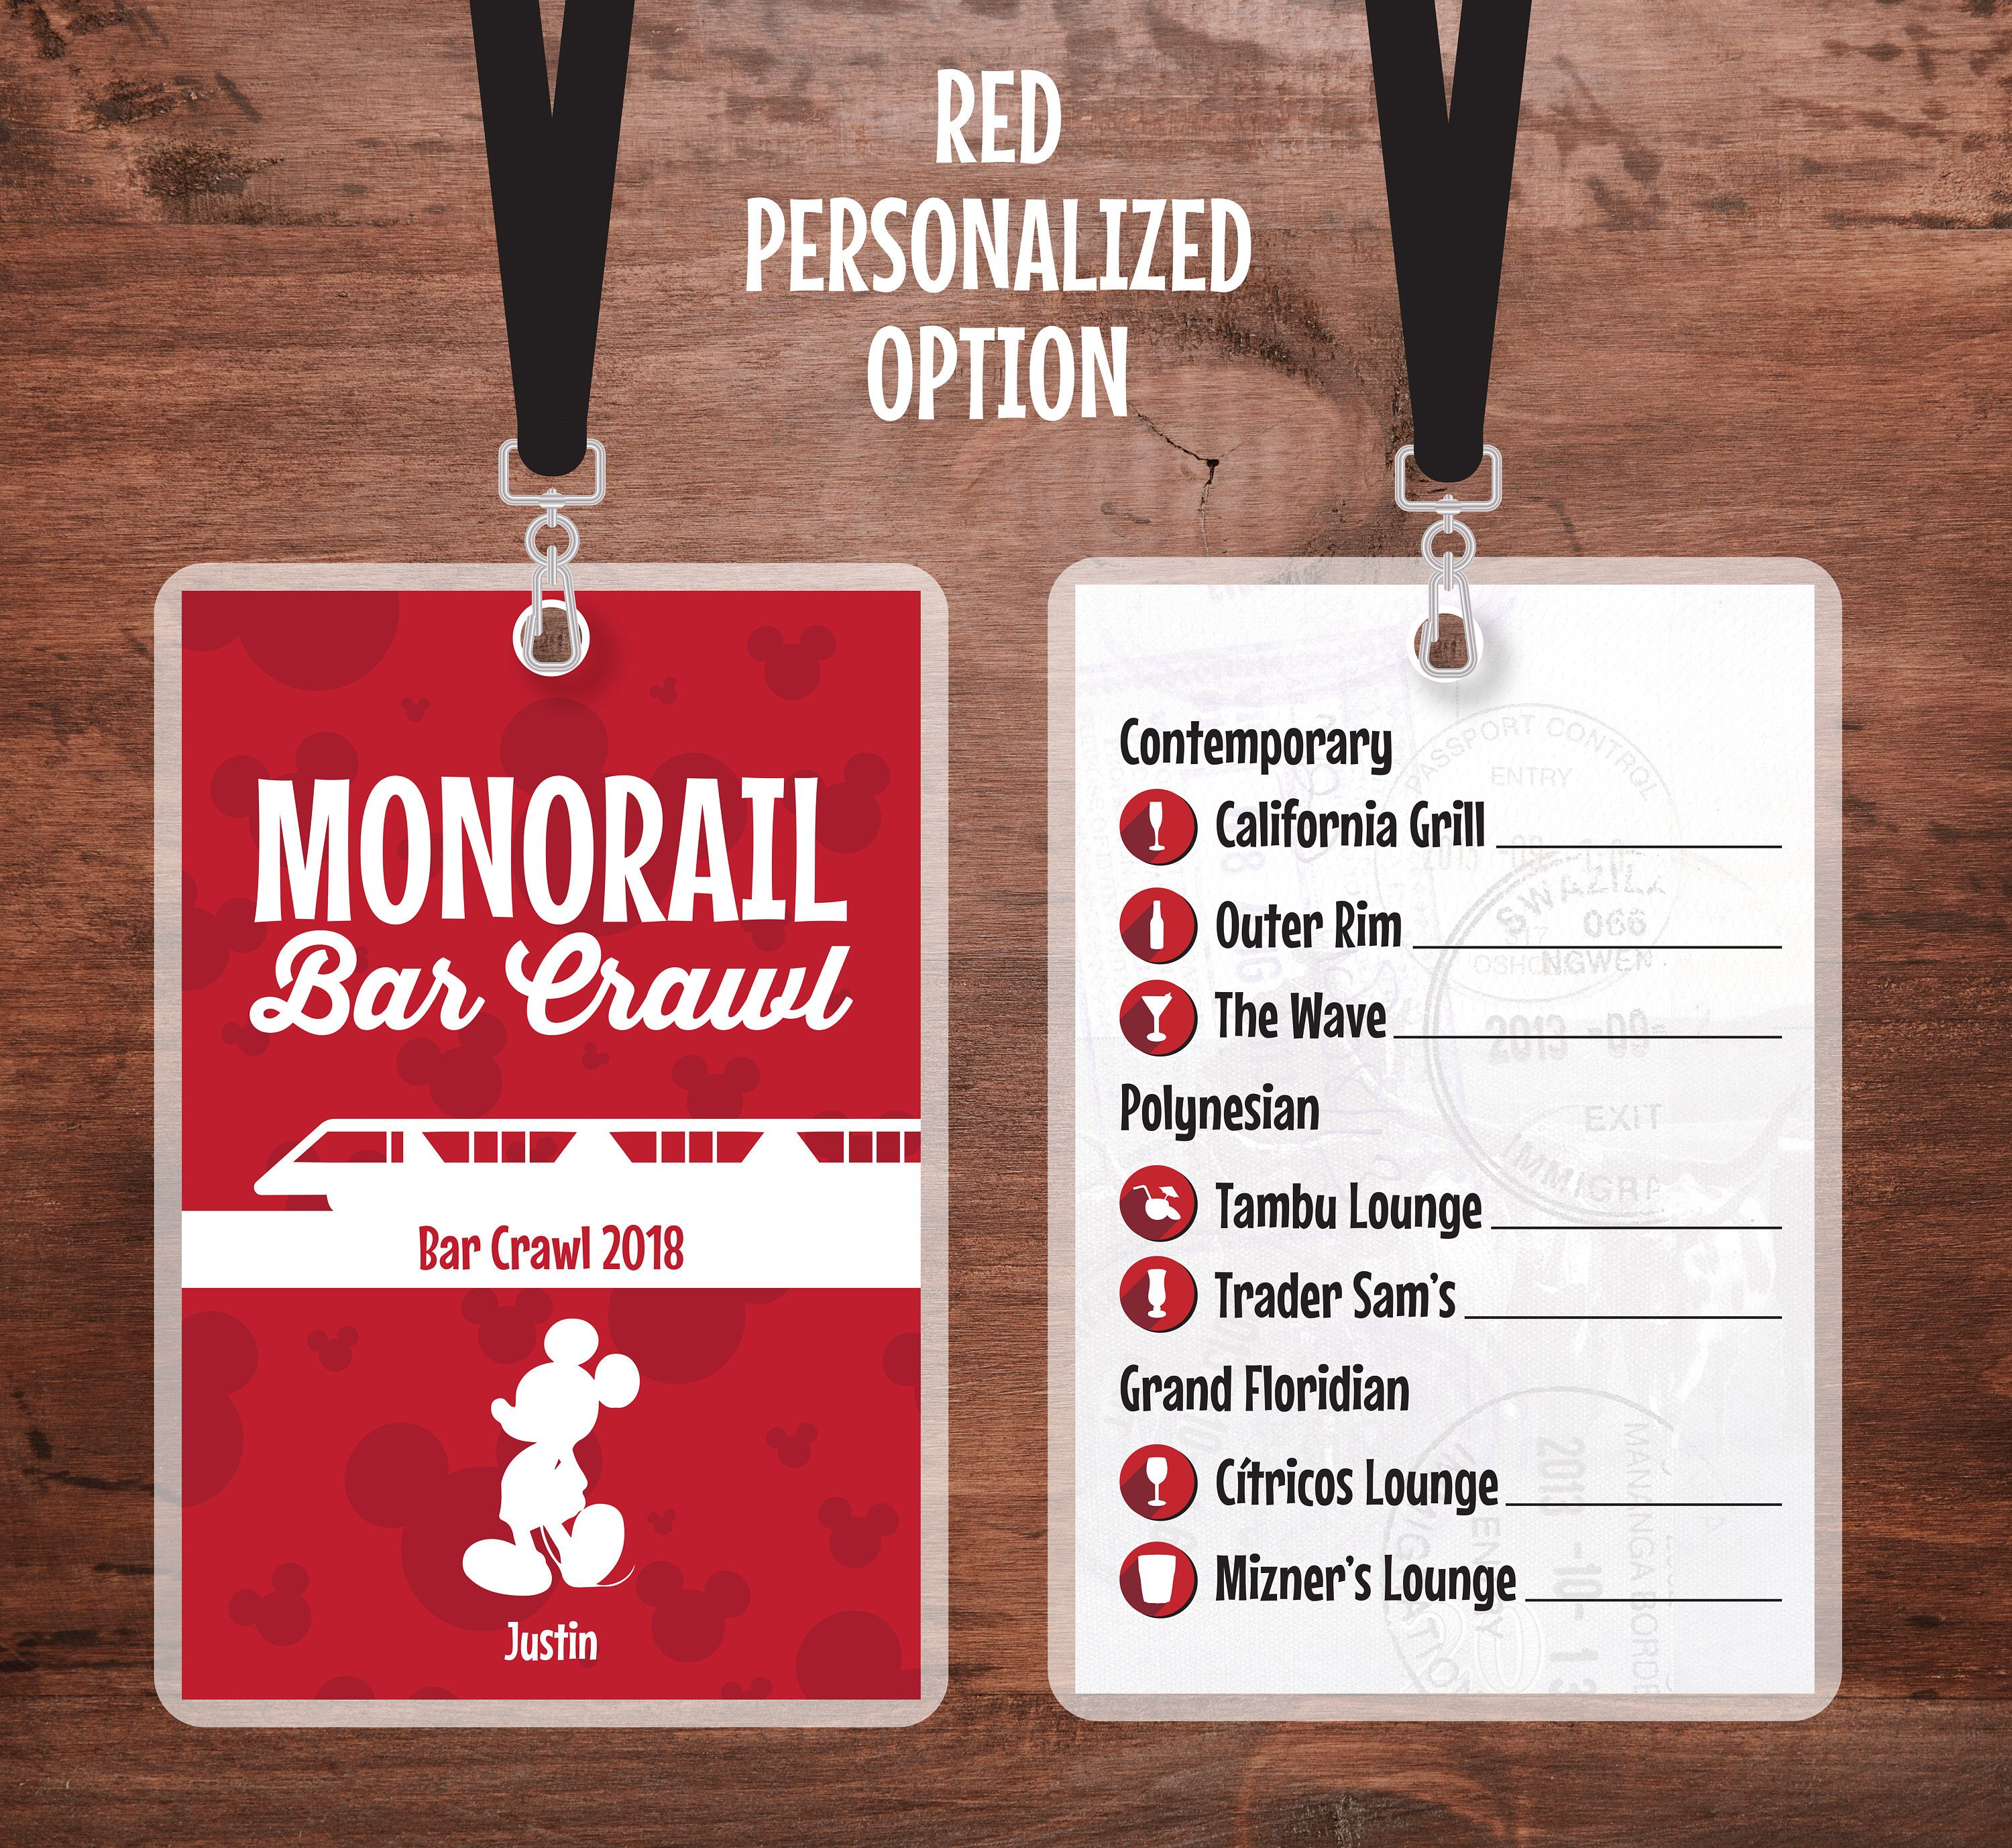 Monorail Bar Crawl Lanyard Walt Disney World Lanyard Contemporary Resort Polynesian Grand Floridian 21st B Bar Crawl Disney Dream Cruise Disney Dream